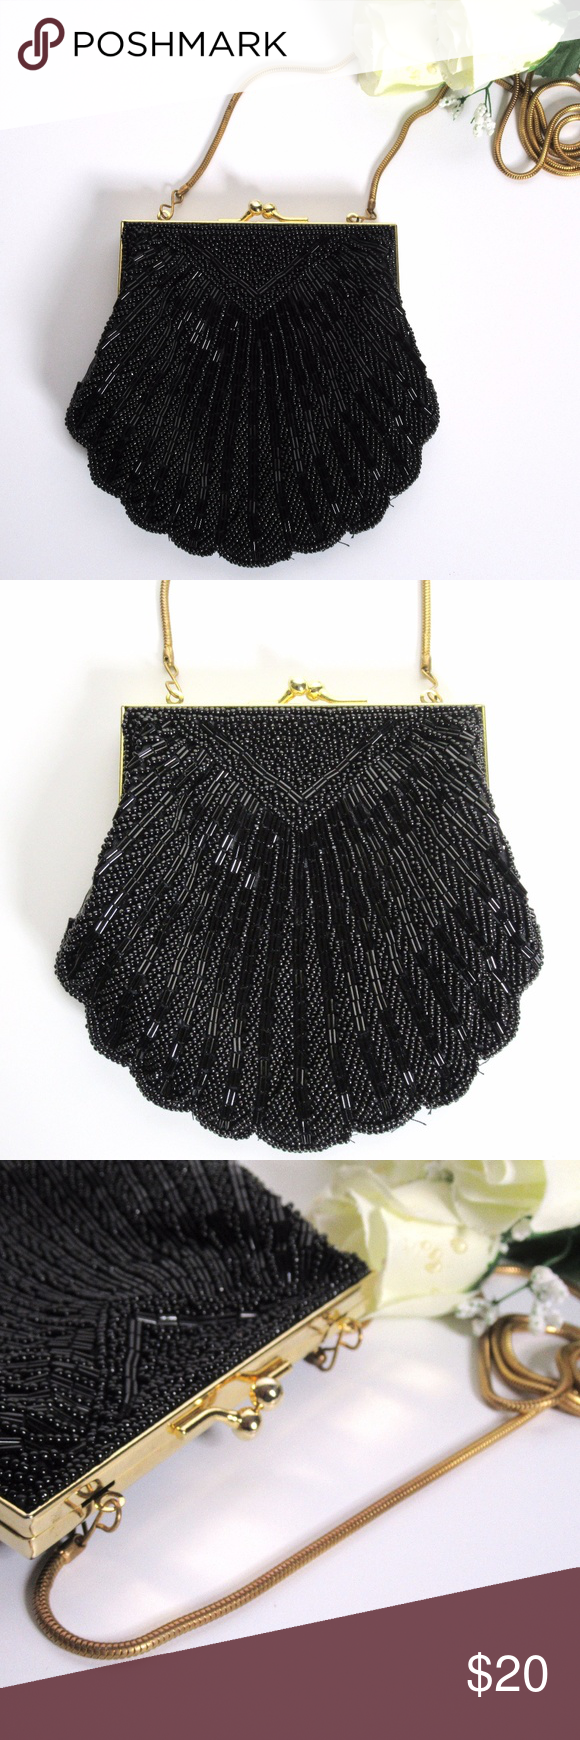 Carla Marchi Beaded Bag With Chain Strap Beautiful Purse Looks Like It Has Never Been Used You Can Use As A Shoulder Or Clutch By Tucking In The